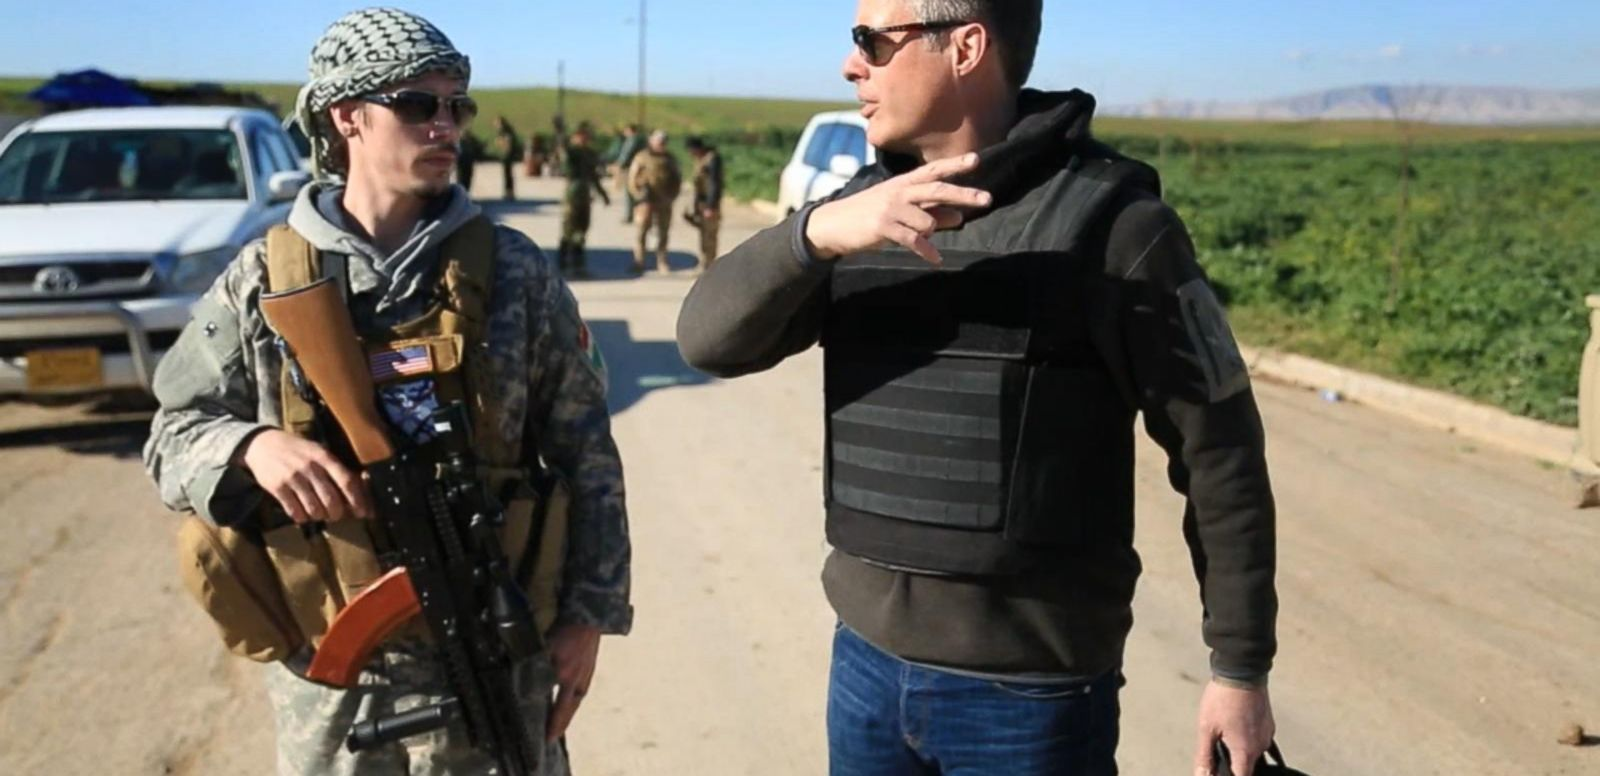 American 'Soldier of Christ' Fights ISIS in Iraq